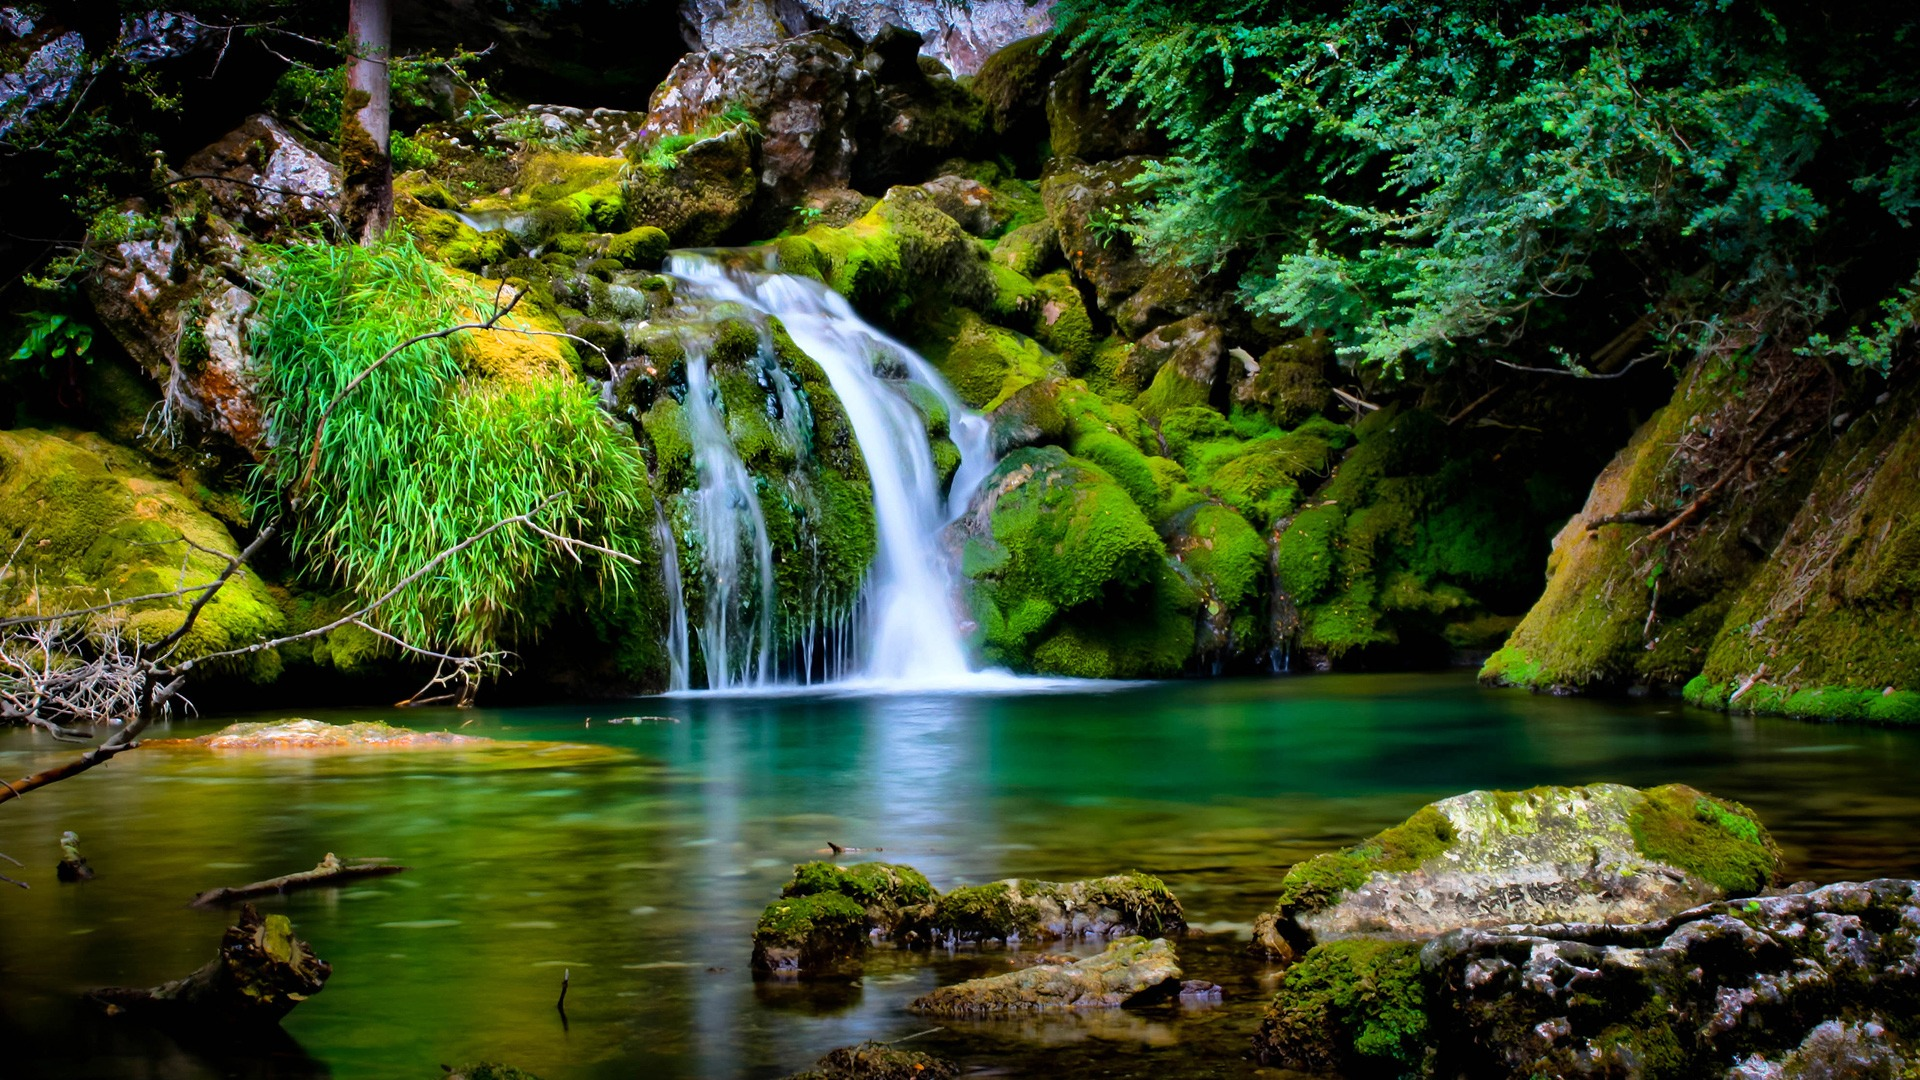 Serene Desktop Waterfall Wallpaper - HD Wallpapers